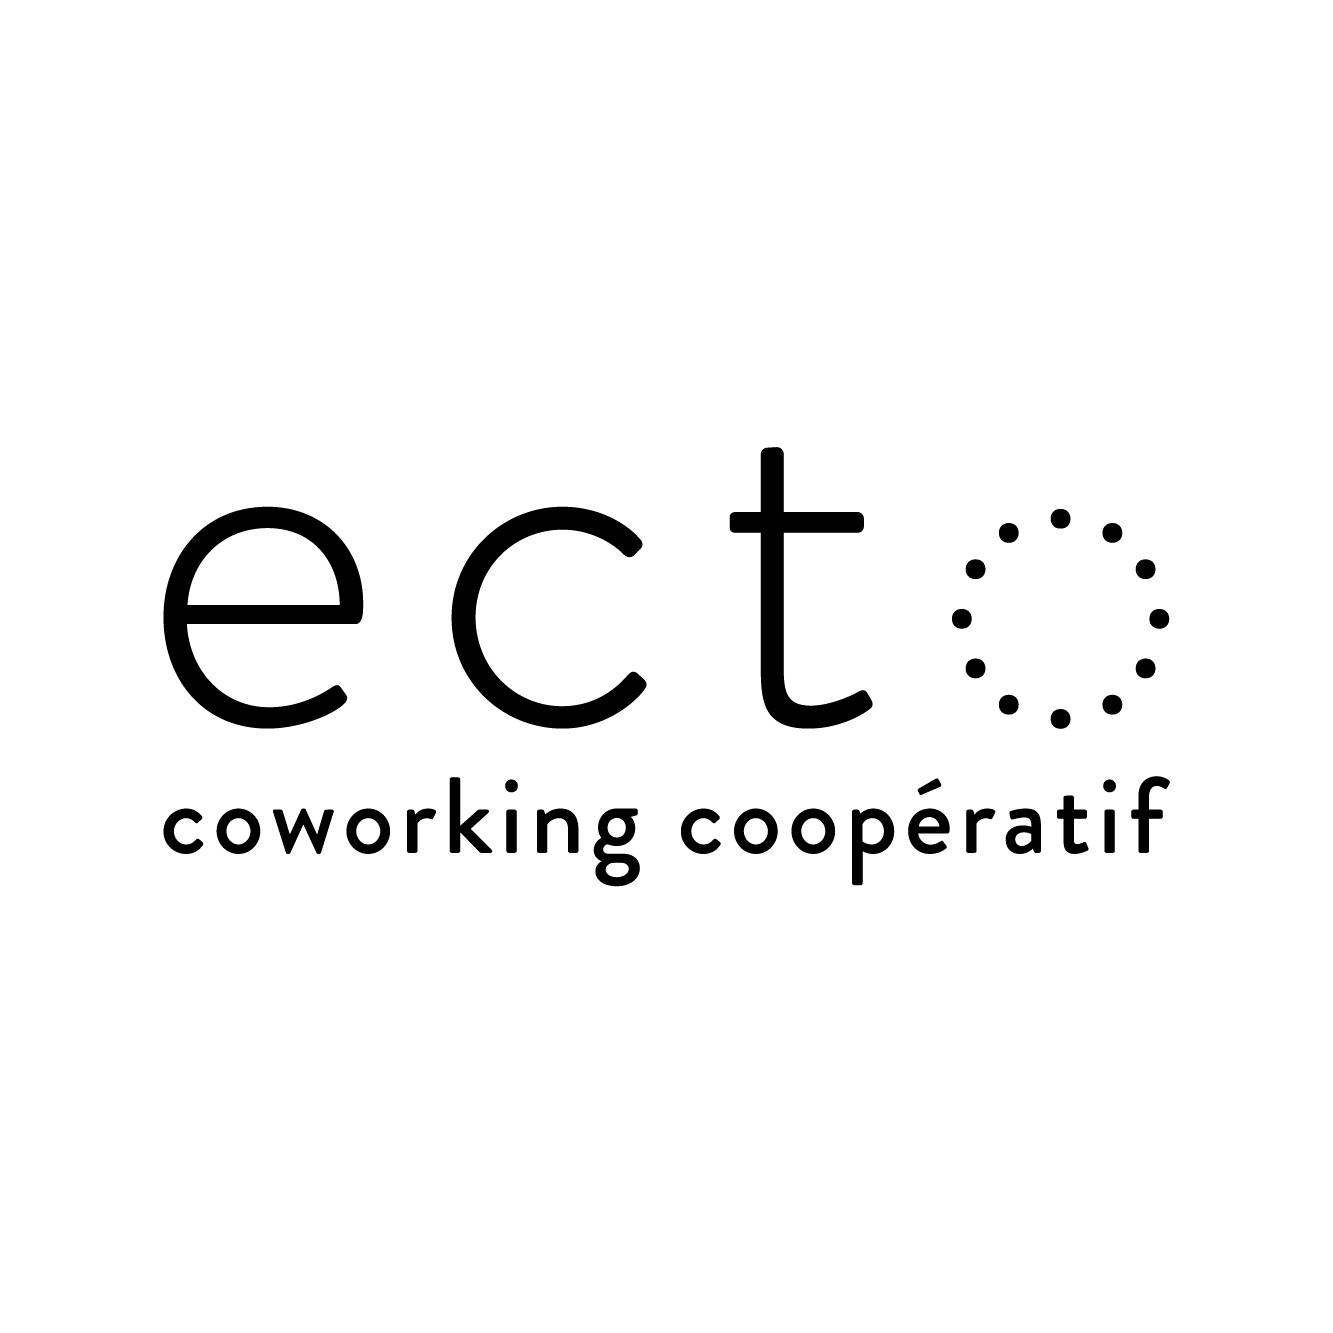 ECTO reviews, opinions and consumer feedback